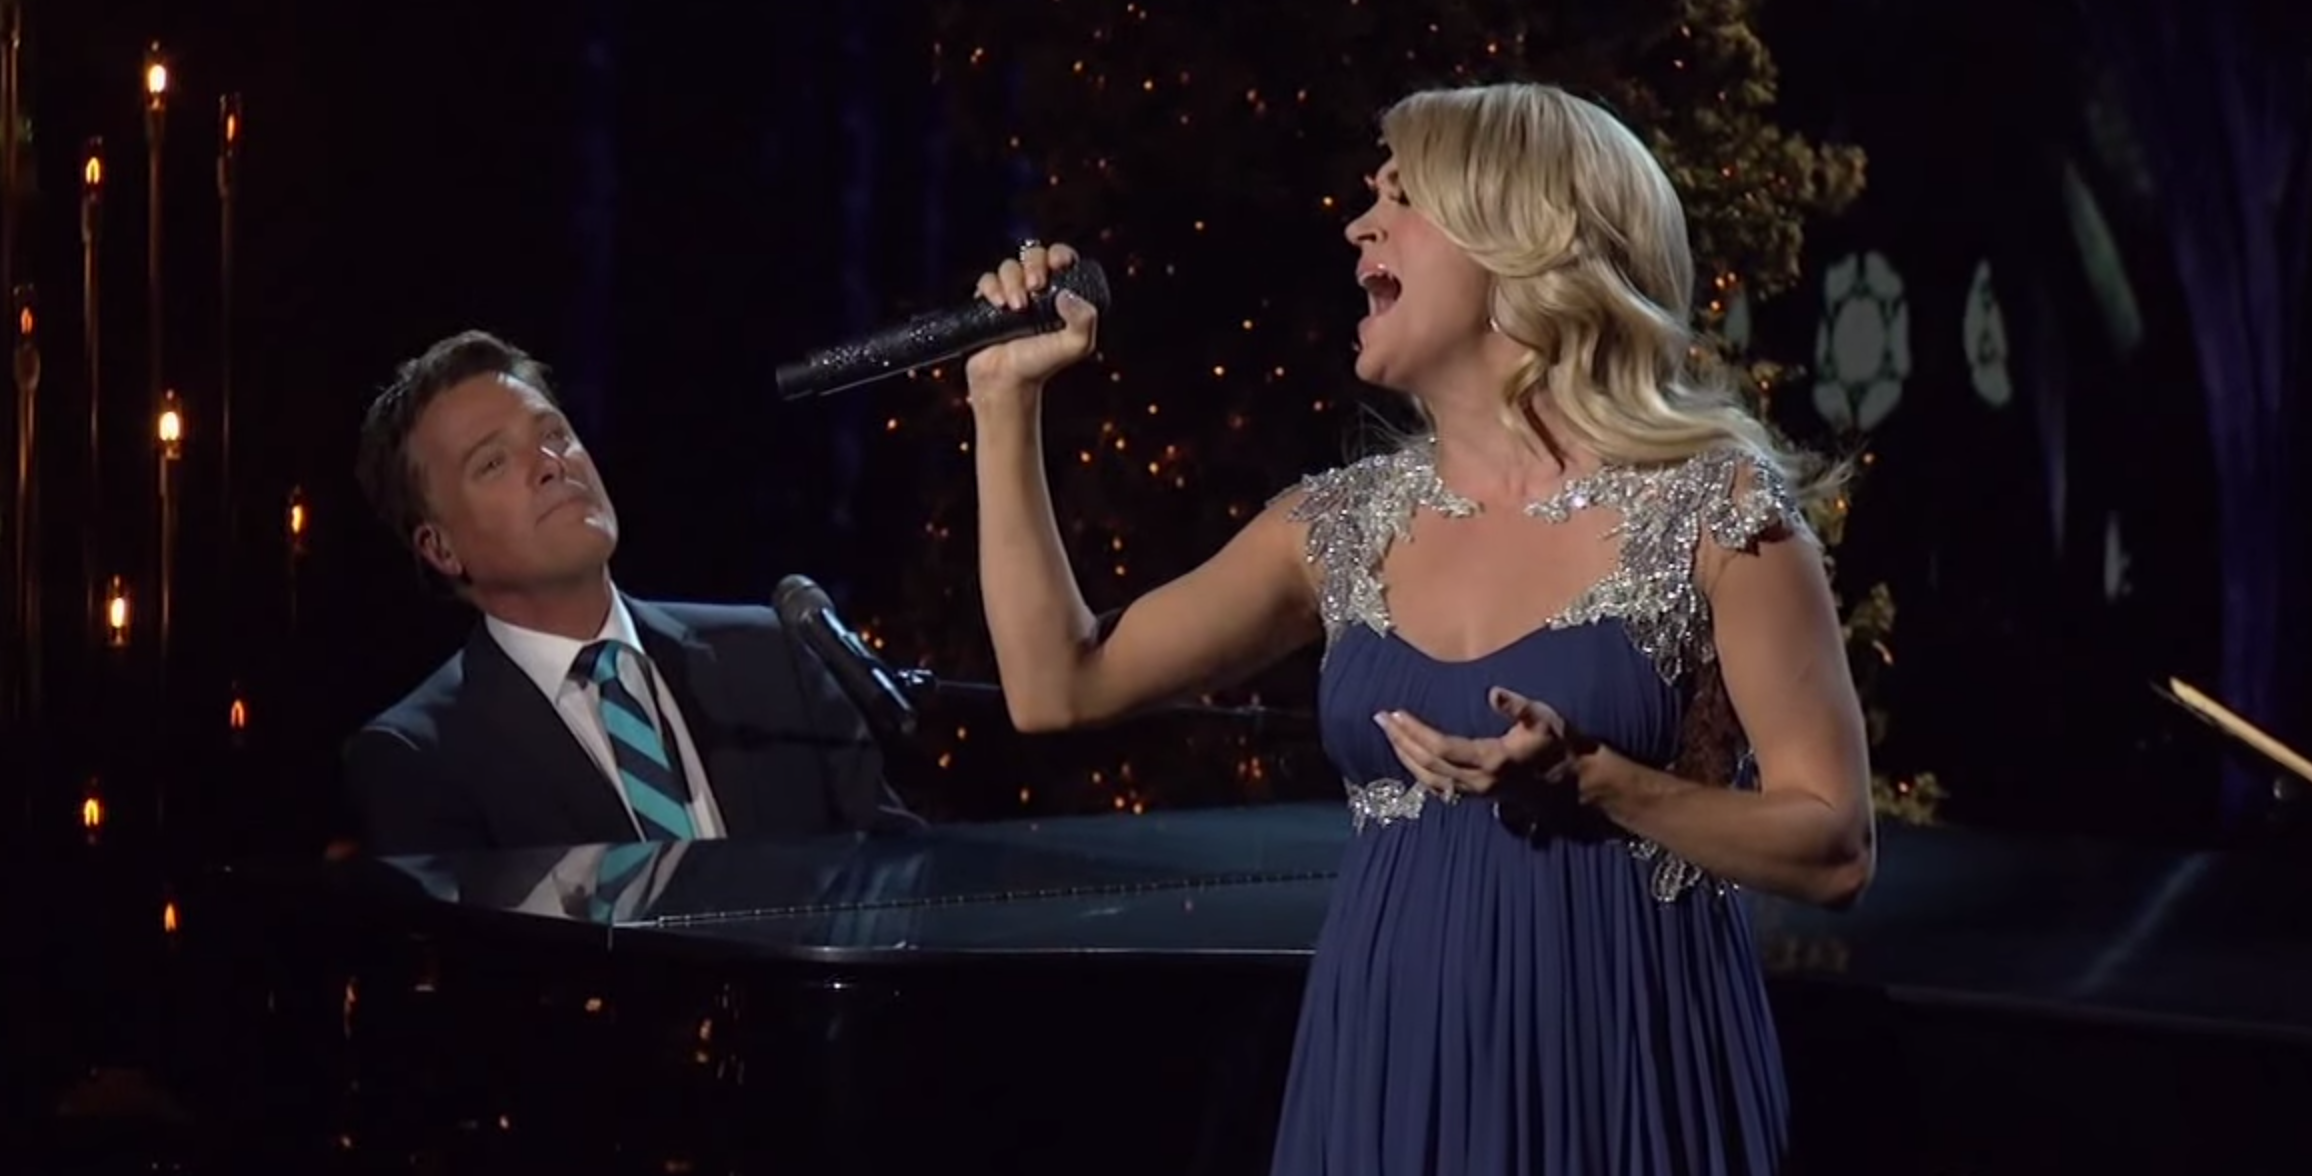 This song will remind you of the magic of Christmas morning. | Michael w smith, Classic holiday